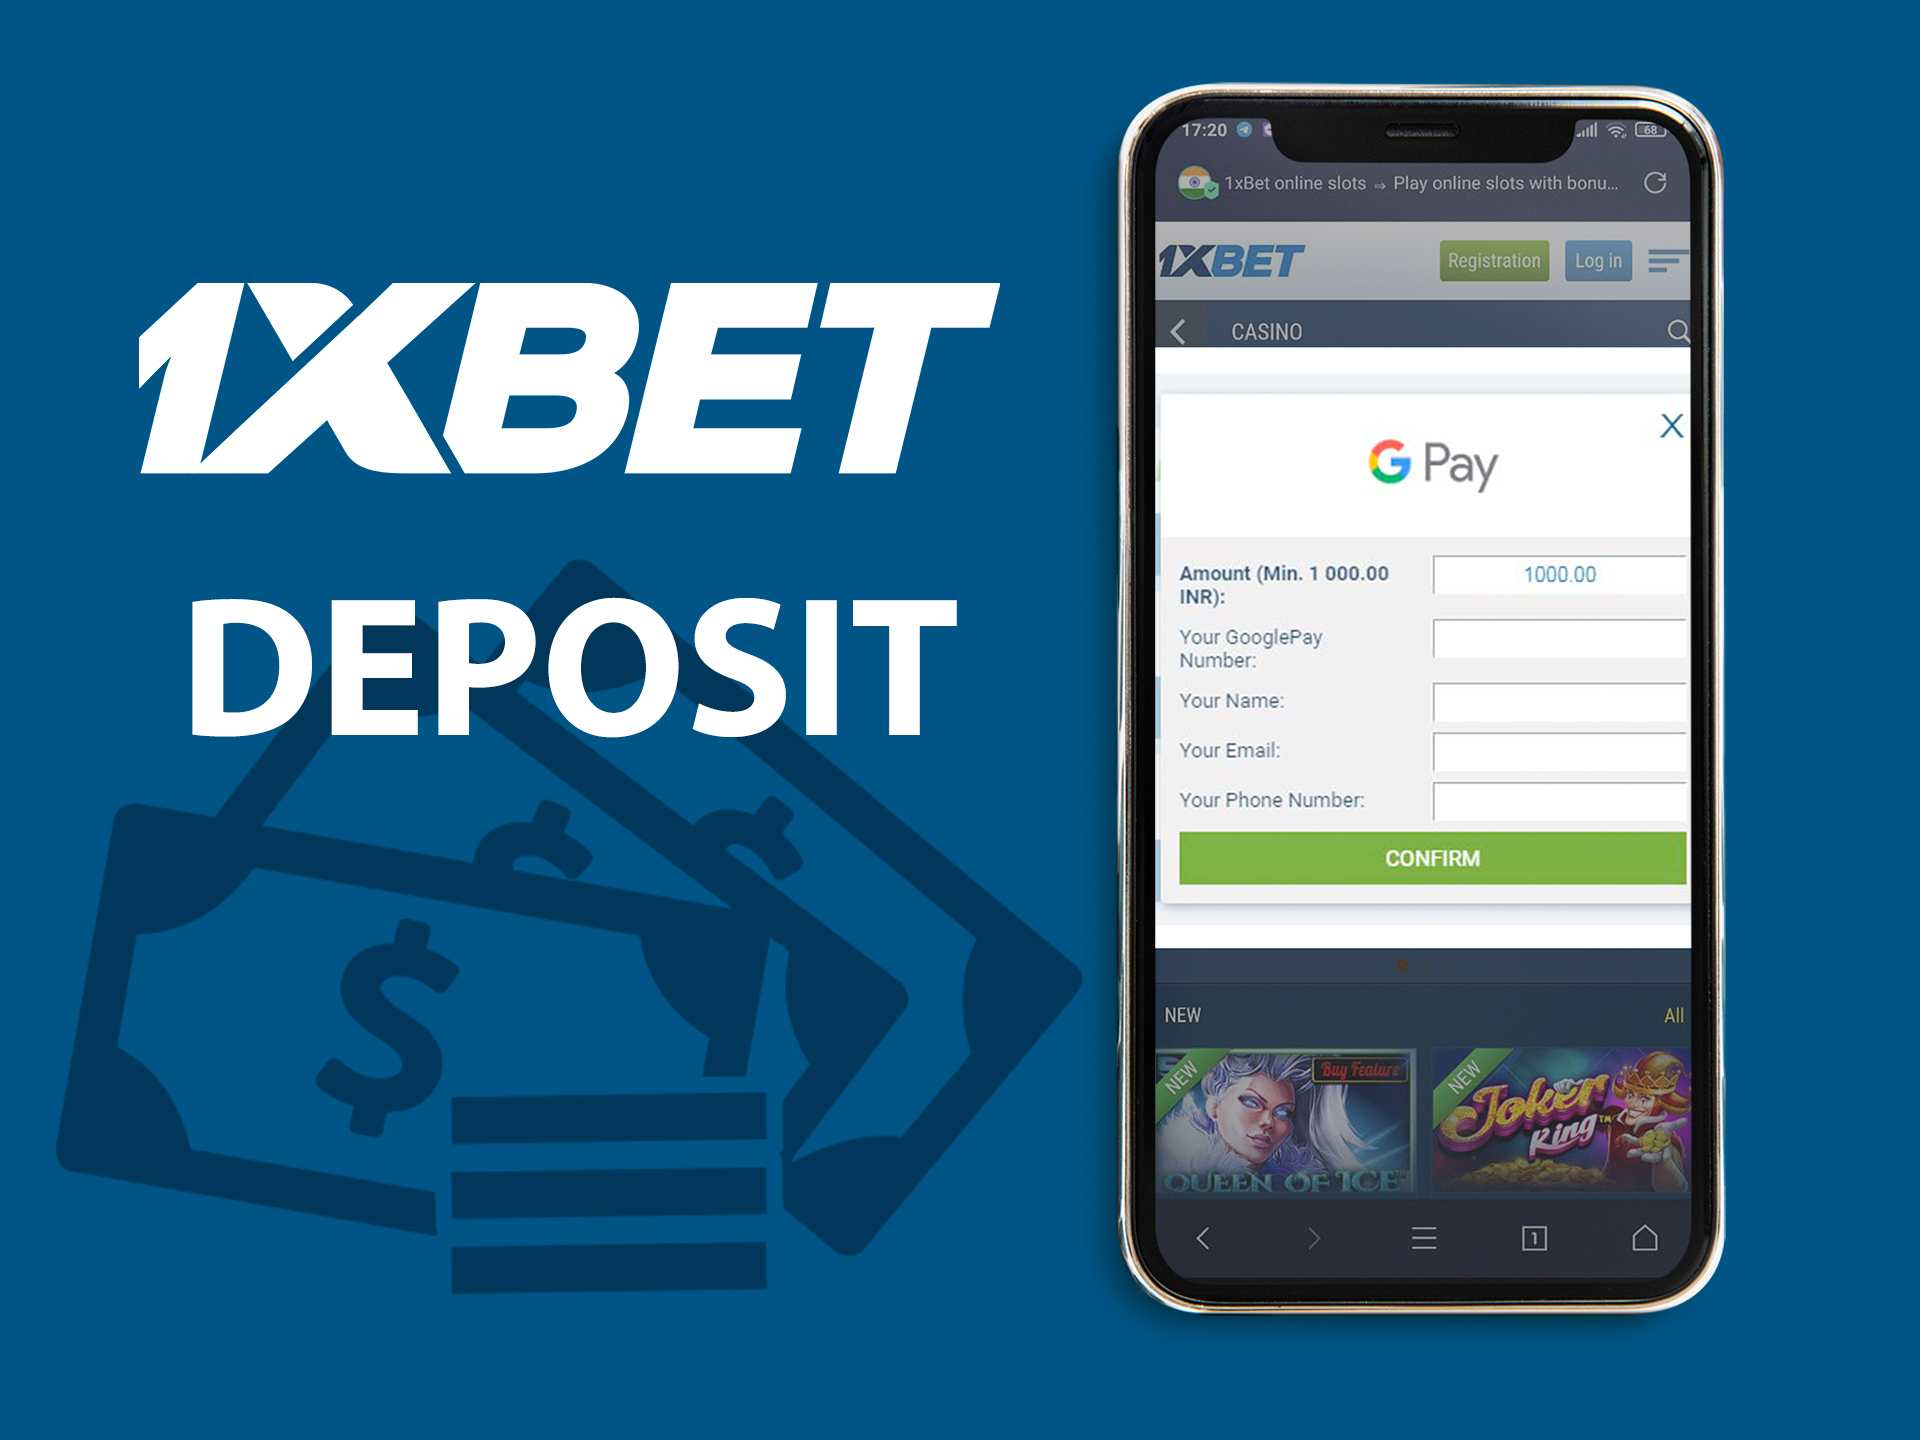 Use the best deposit method for sports betting at 1xBet.